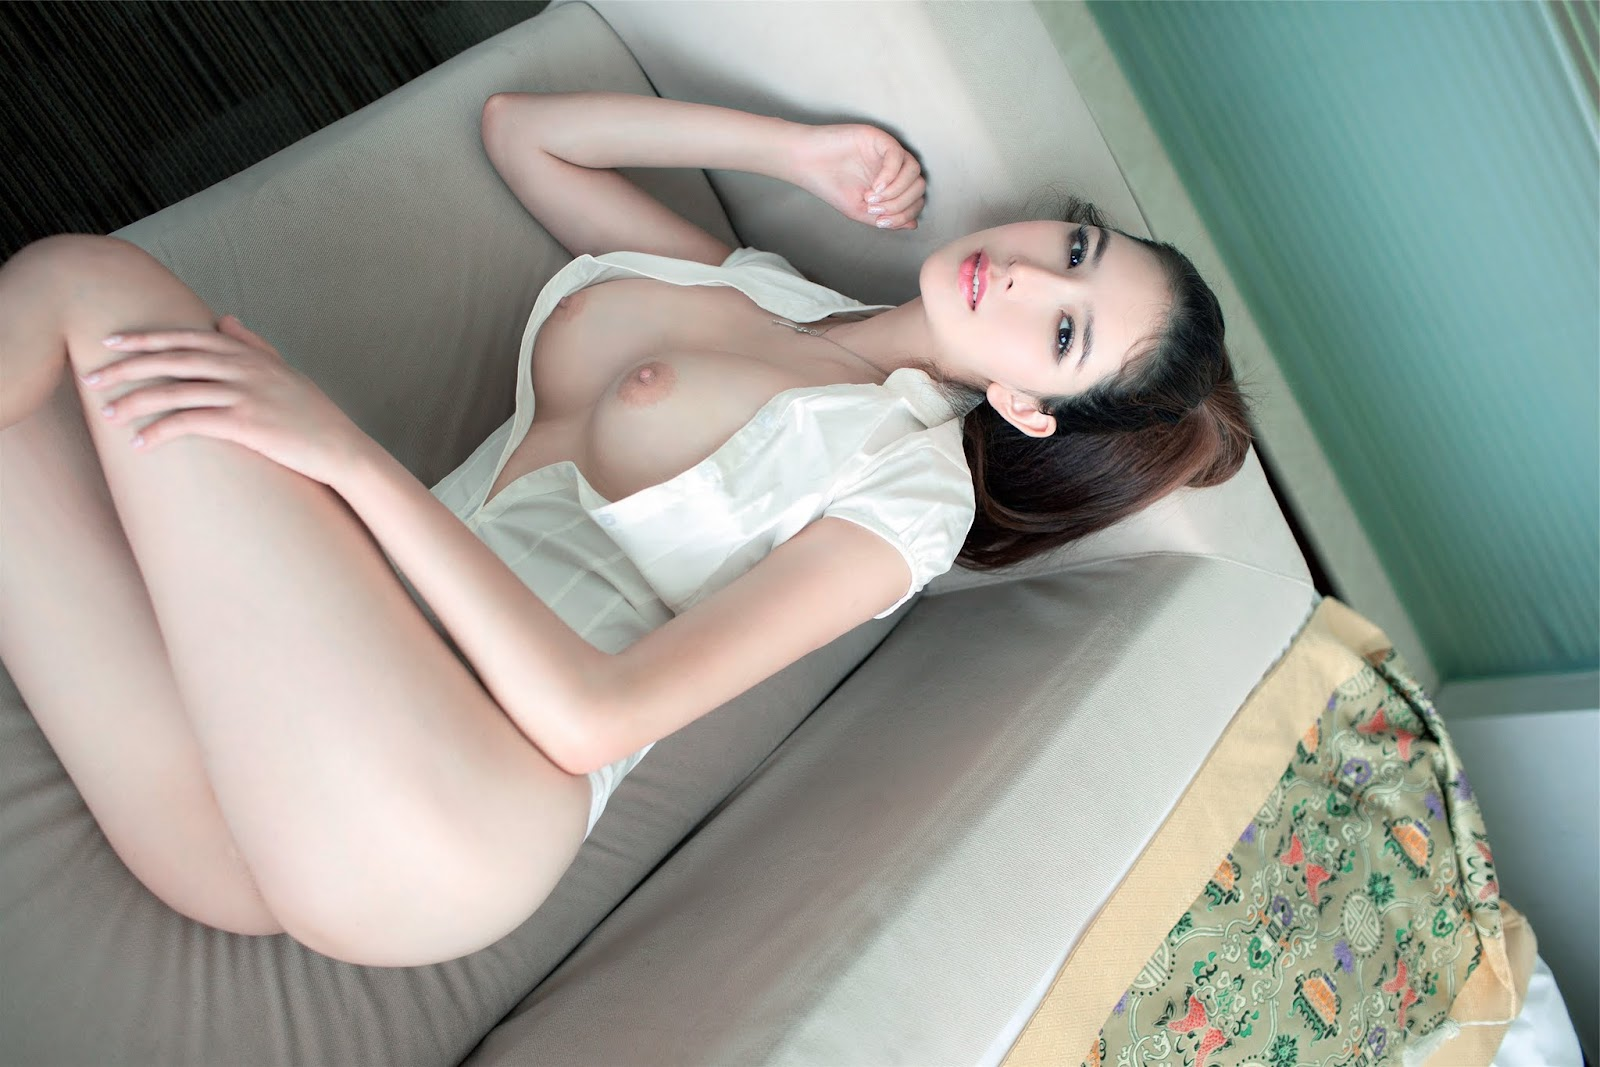 %252Be%252B%25C3%25B7%252B%25C2%25BB 13 - TUIGIRL NO.37 Sexy Hot Girl